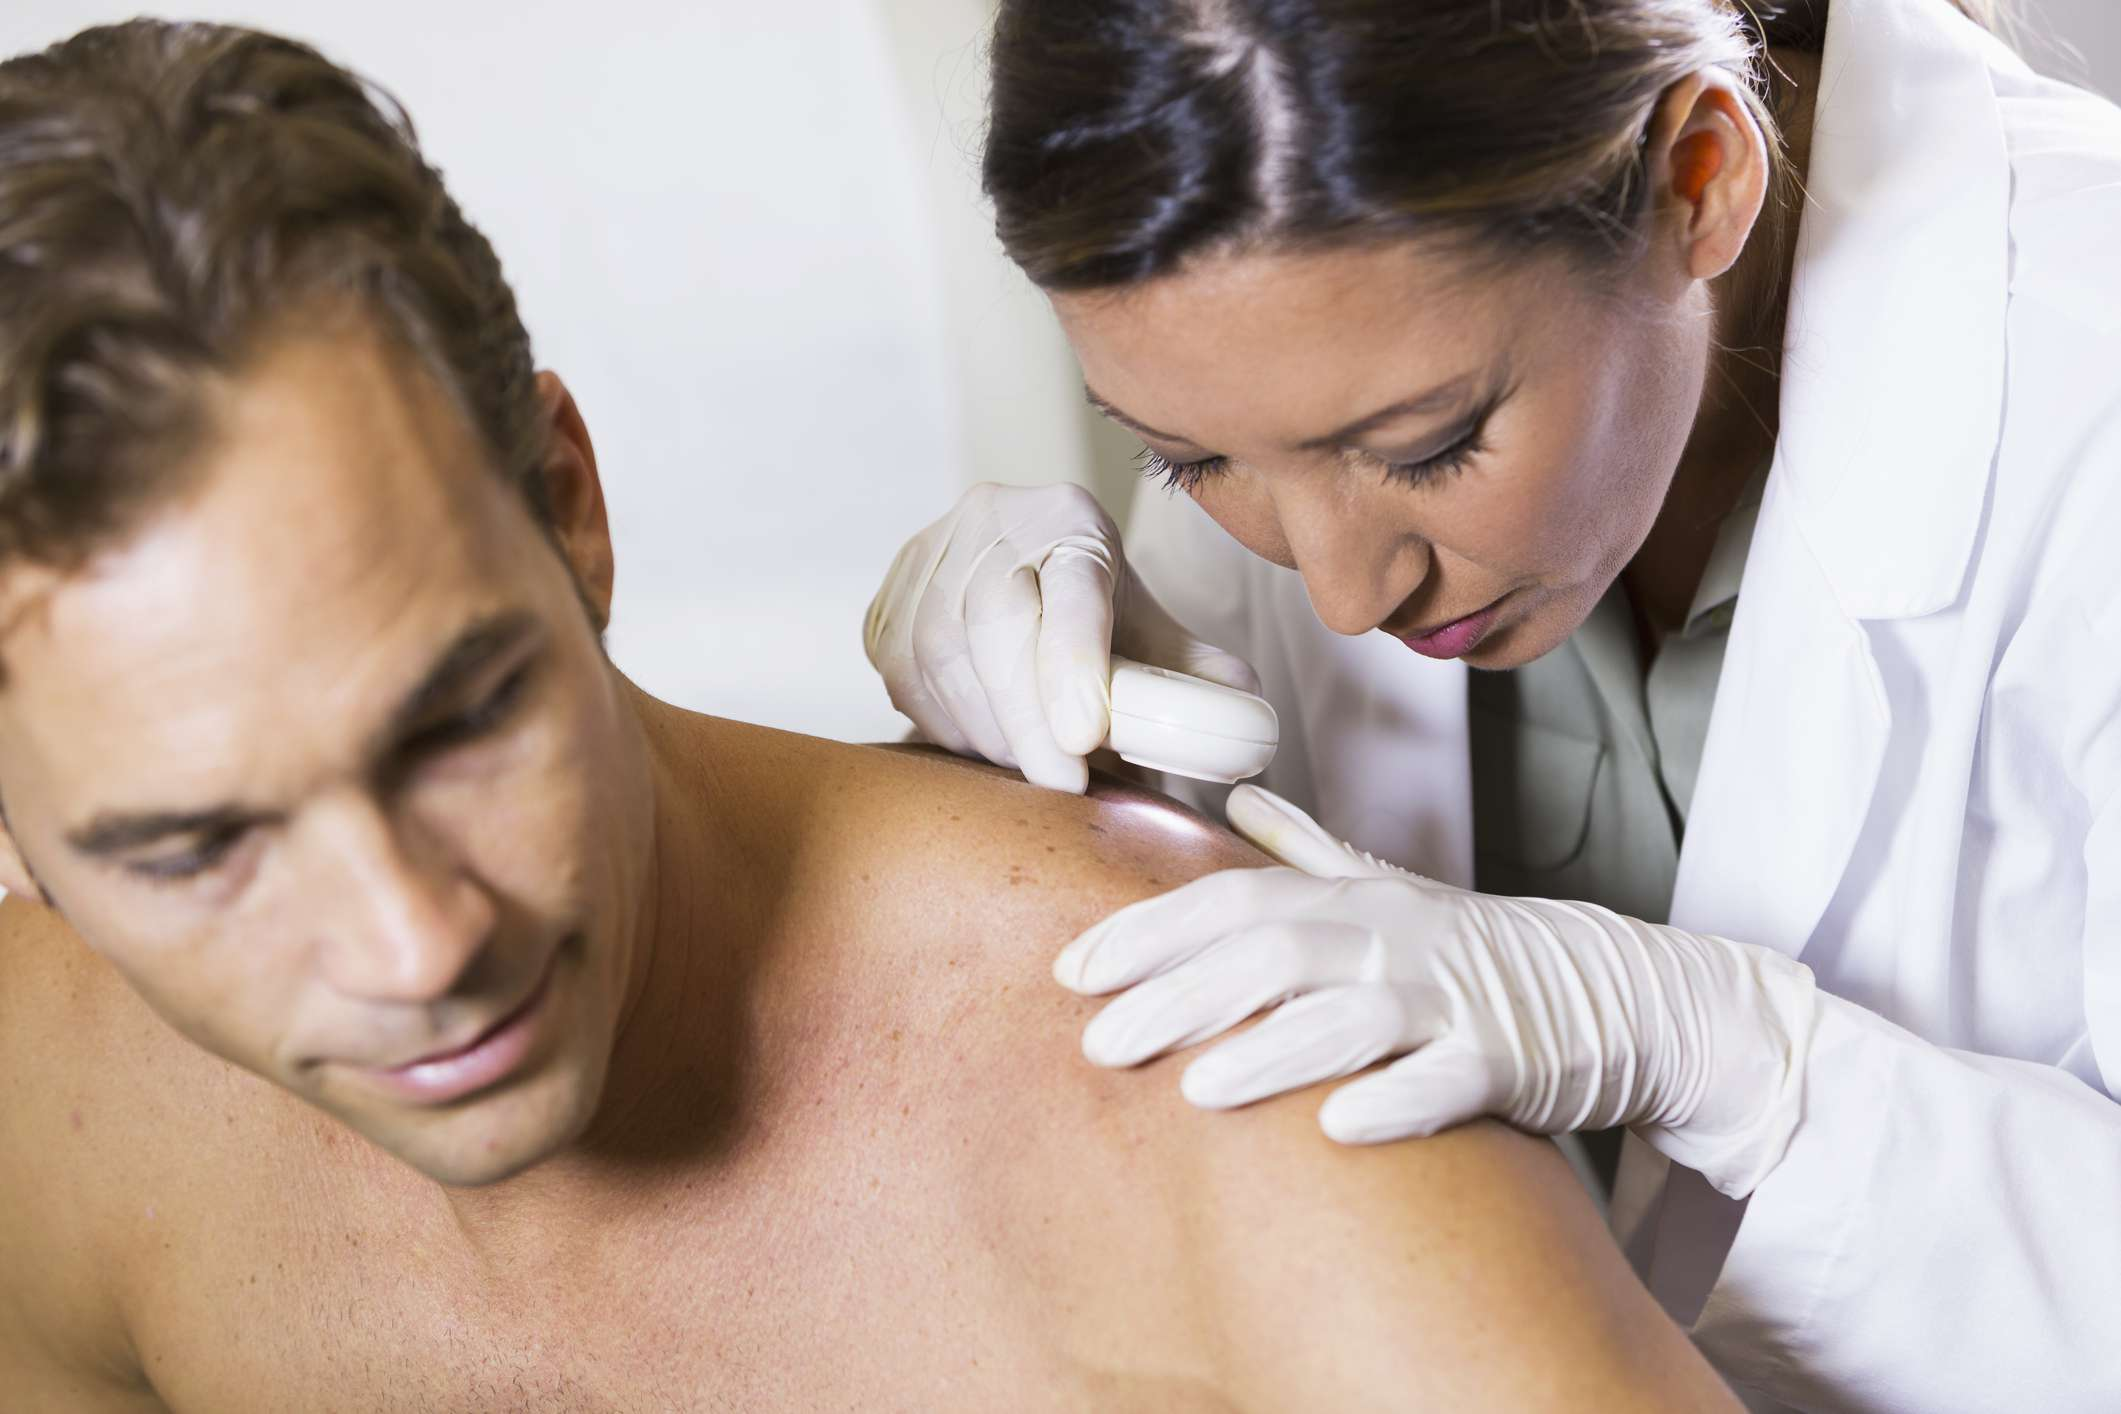 Female doctor examining male patient with dermascope, looking for signs of skin cancer